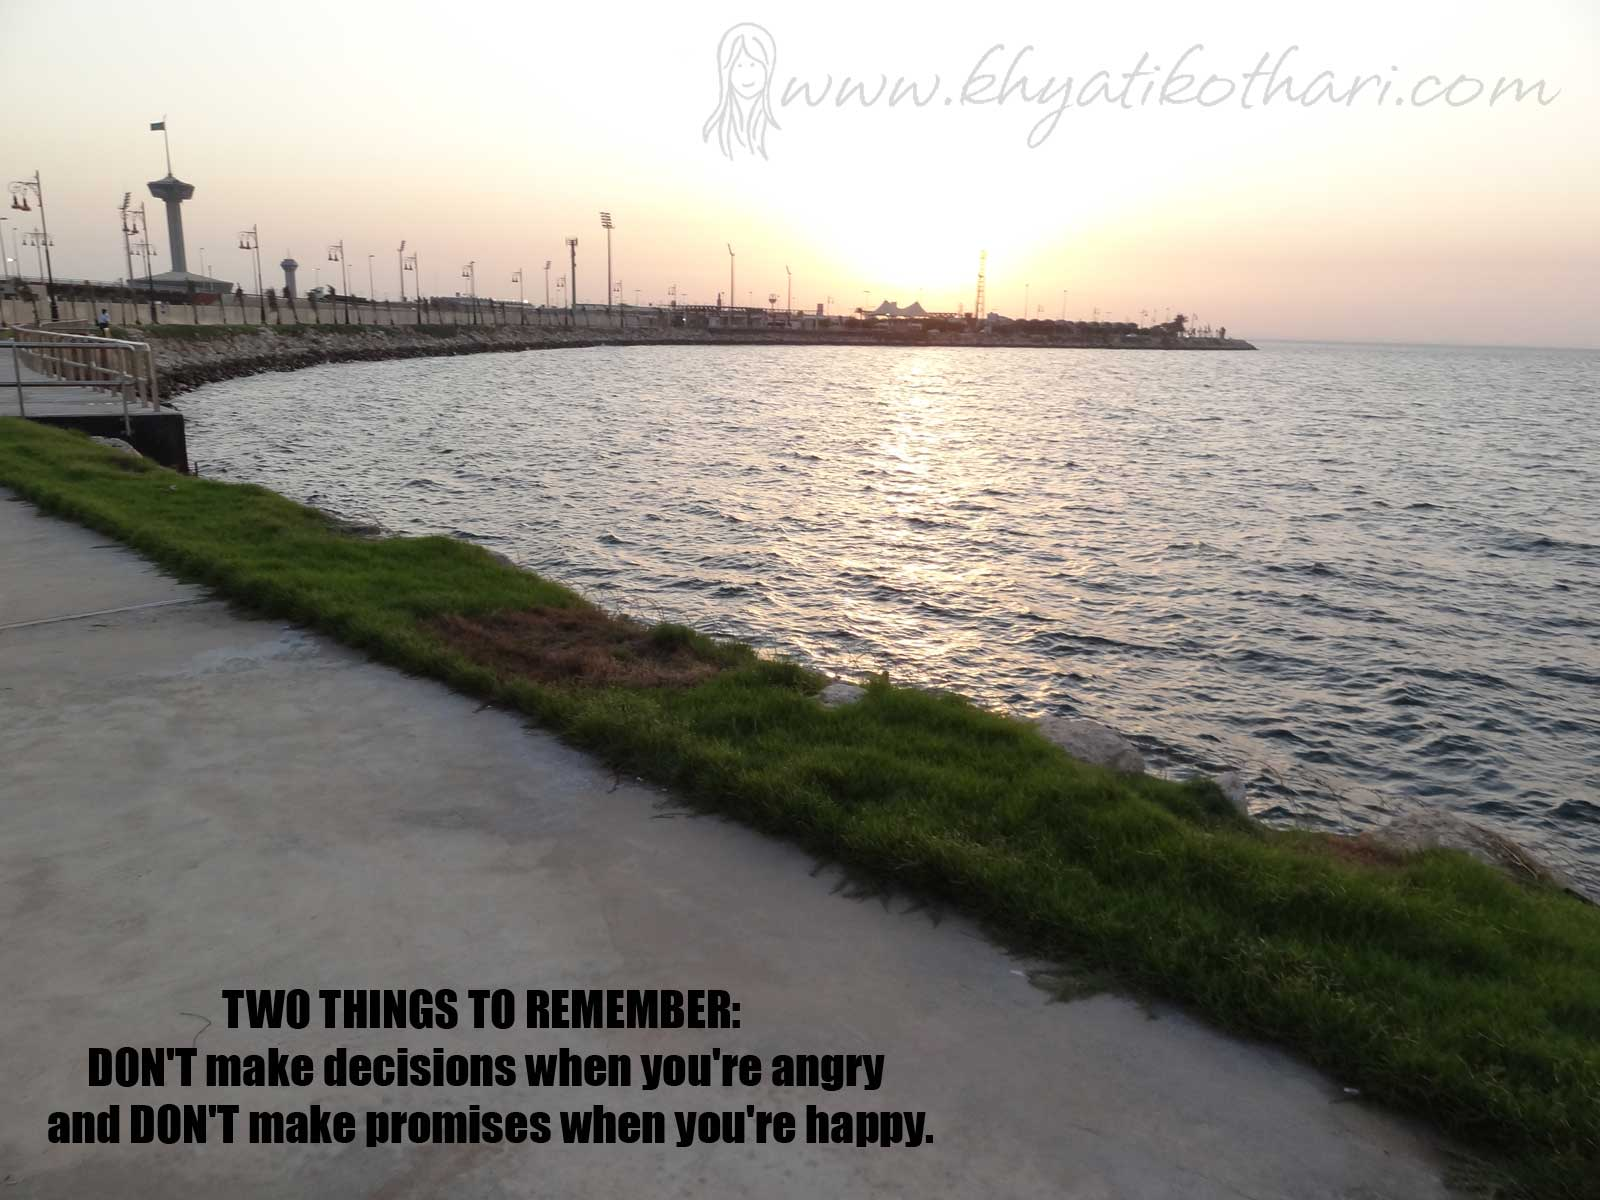 TWO THINGS TO REMEMBER